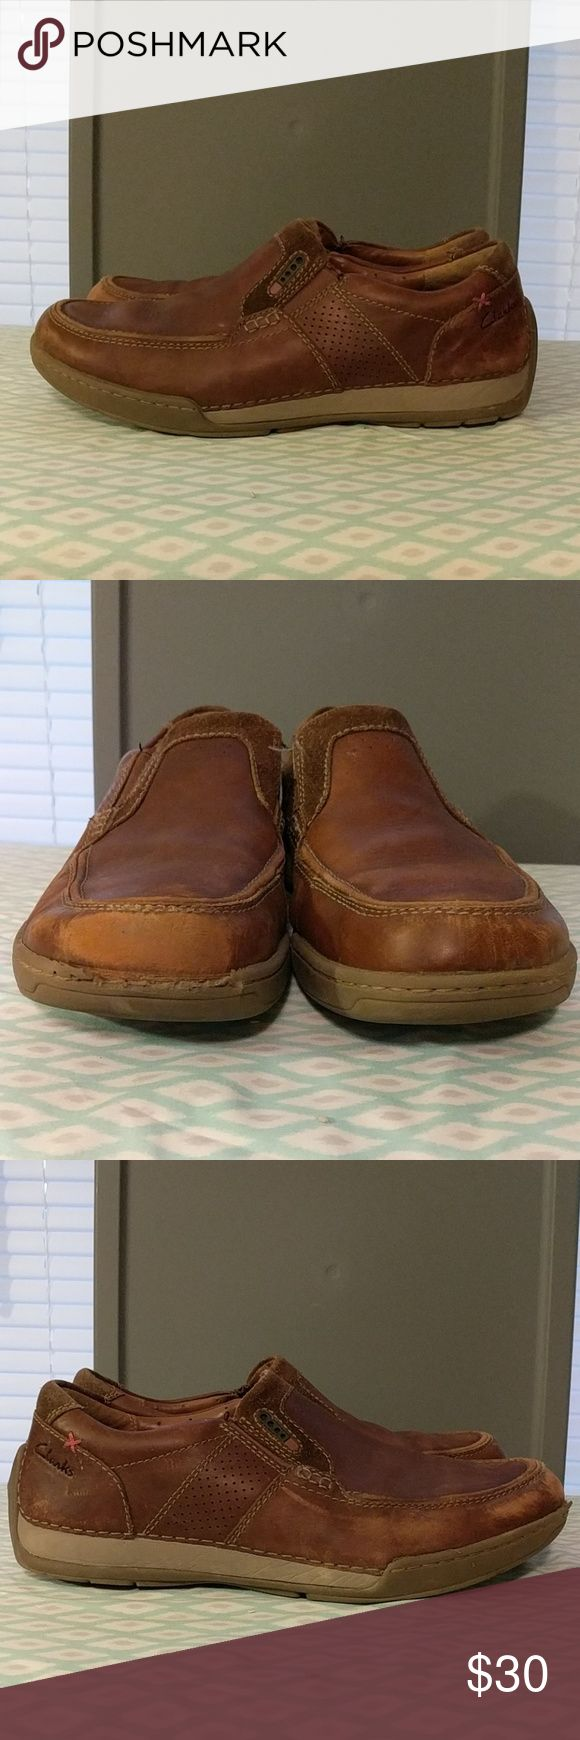 Clarks air vent mens slip on shoes sz 9 These shoes are in decent used condition. The biggest flaw being the scuff and wearing of rubber on the front of one shoe as pictured. Other than that they are in good condition. Size 9 Clarks Shoes Loafers & Slip-Ons